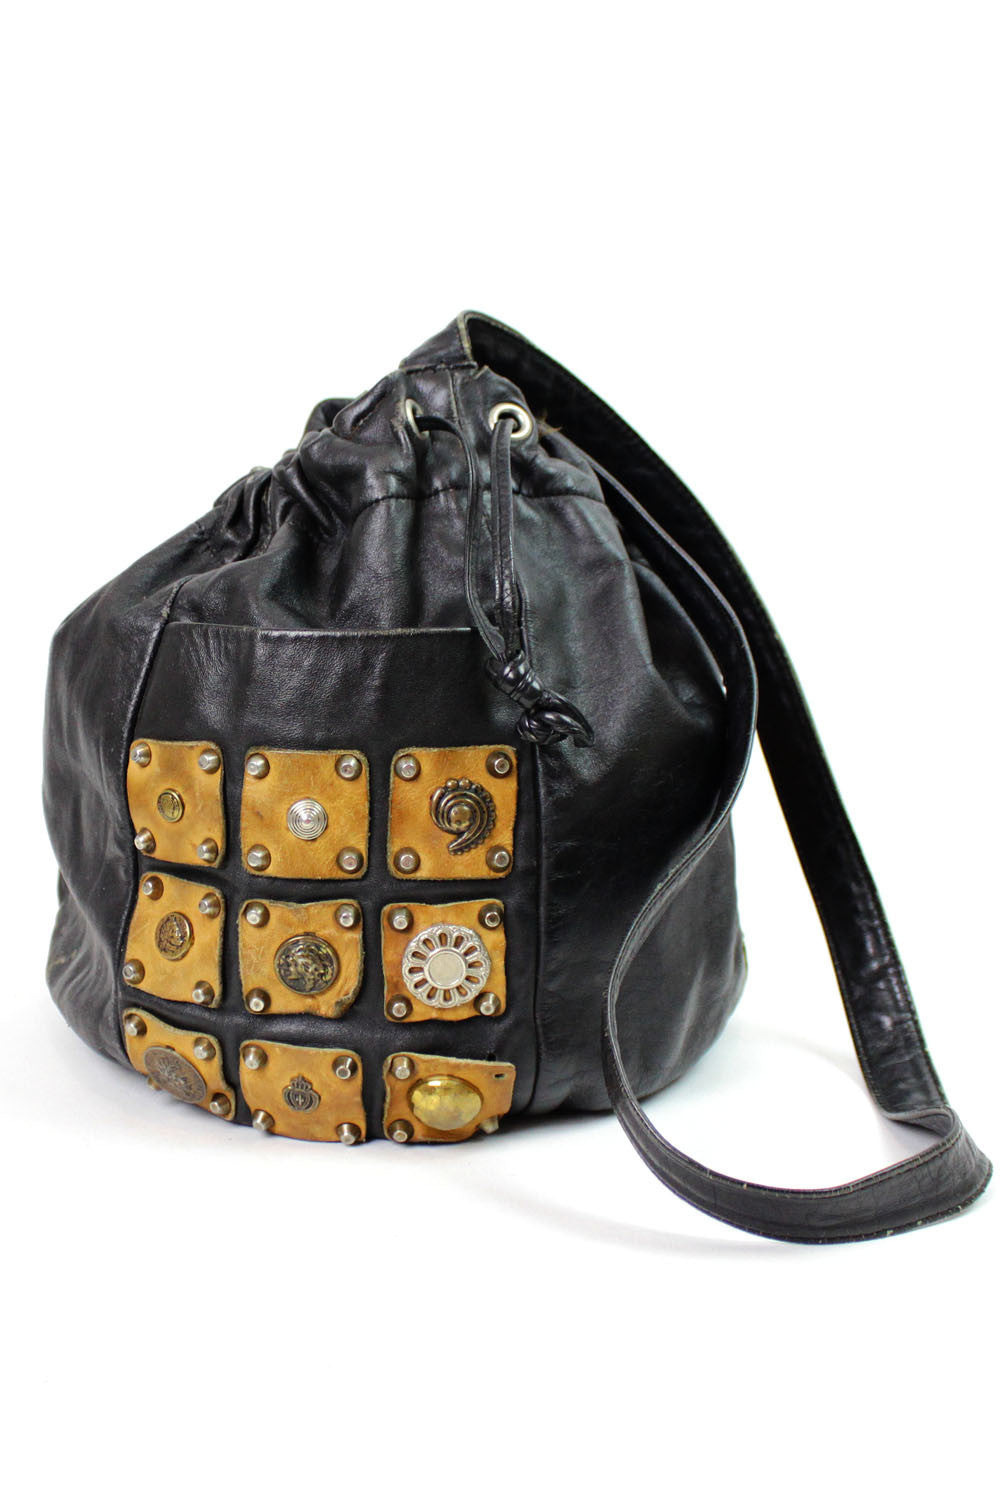 Dryad bucket bag